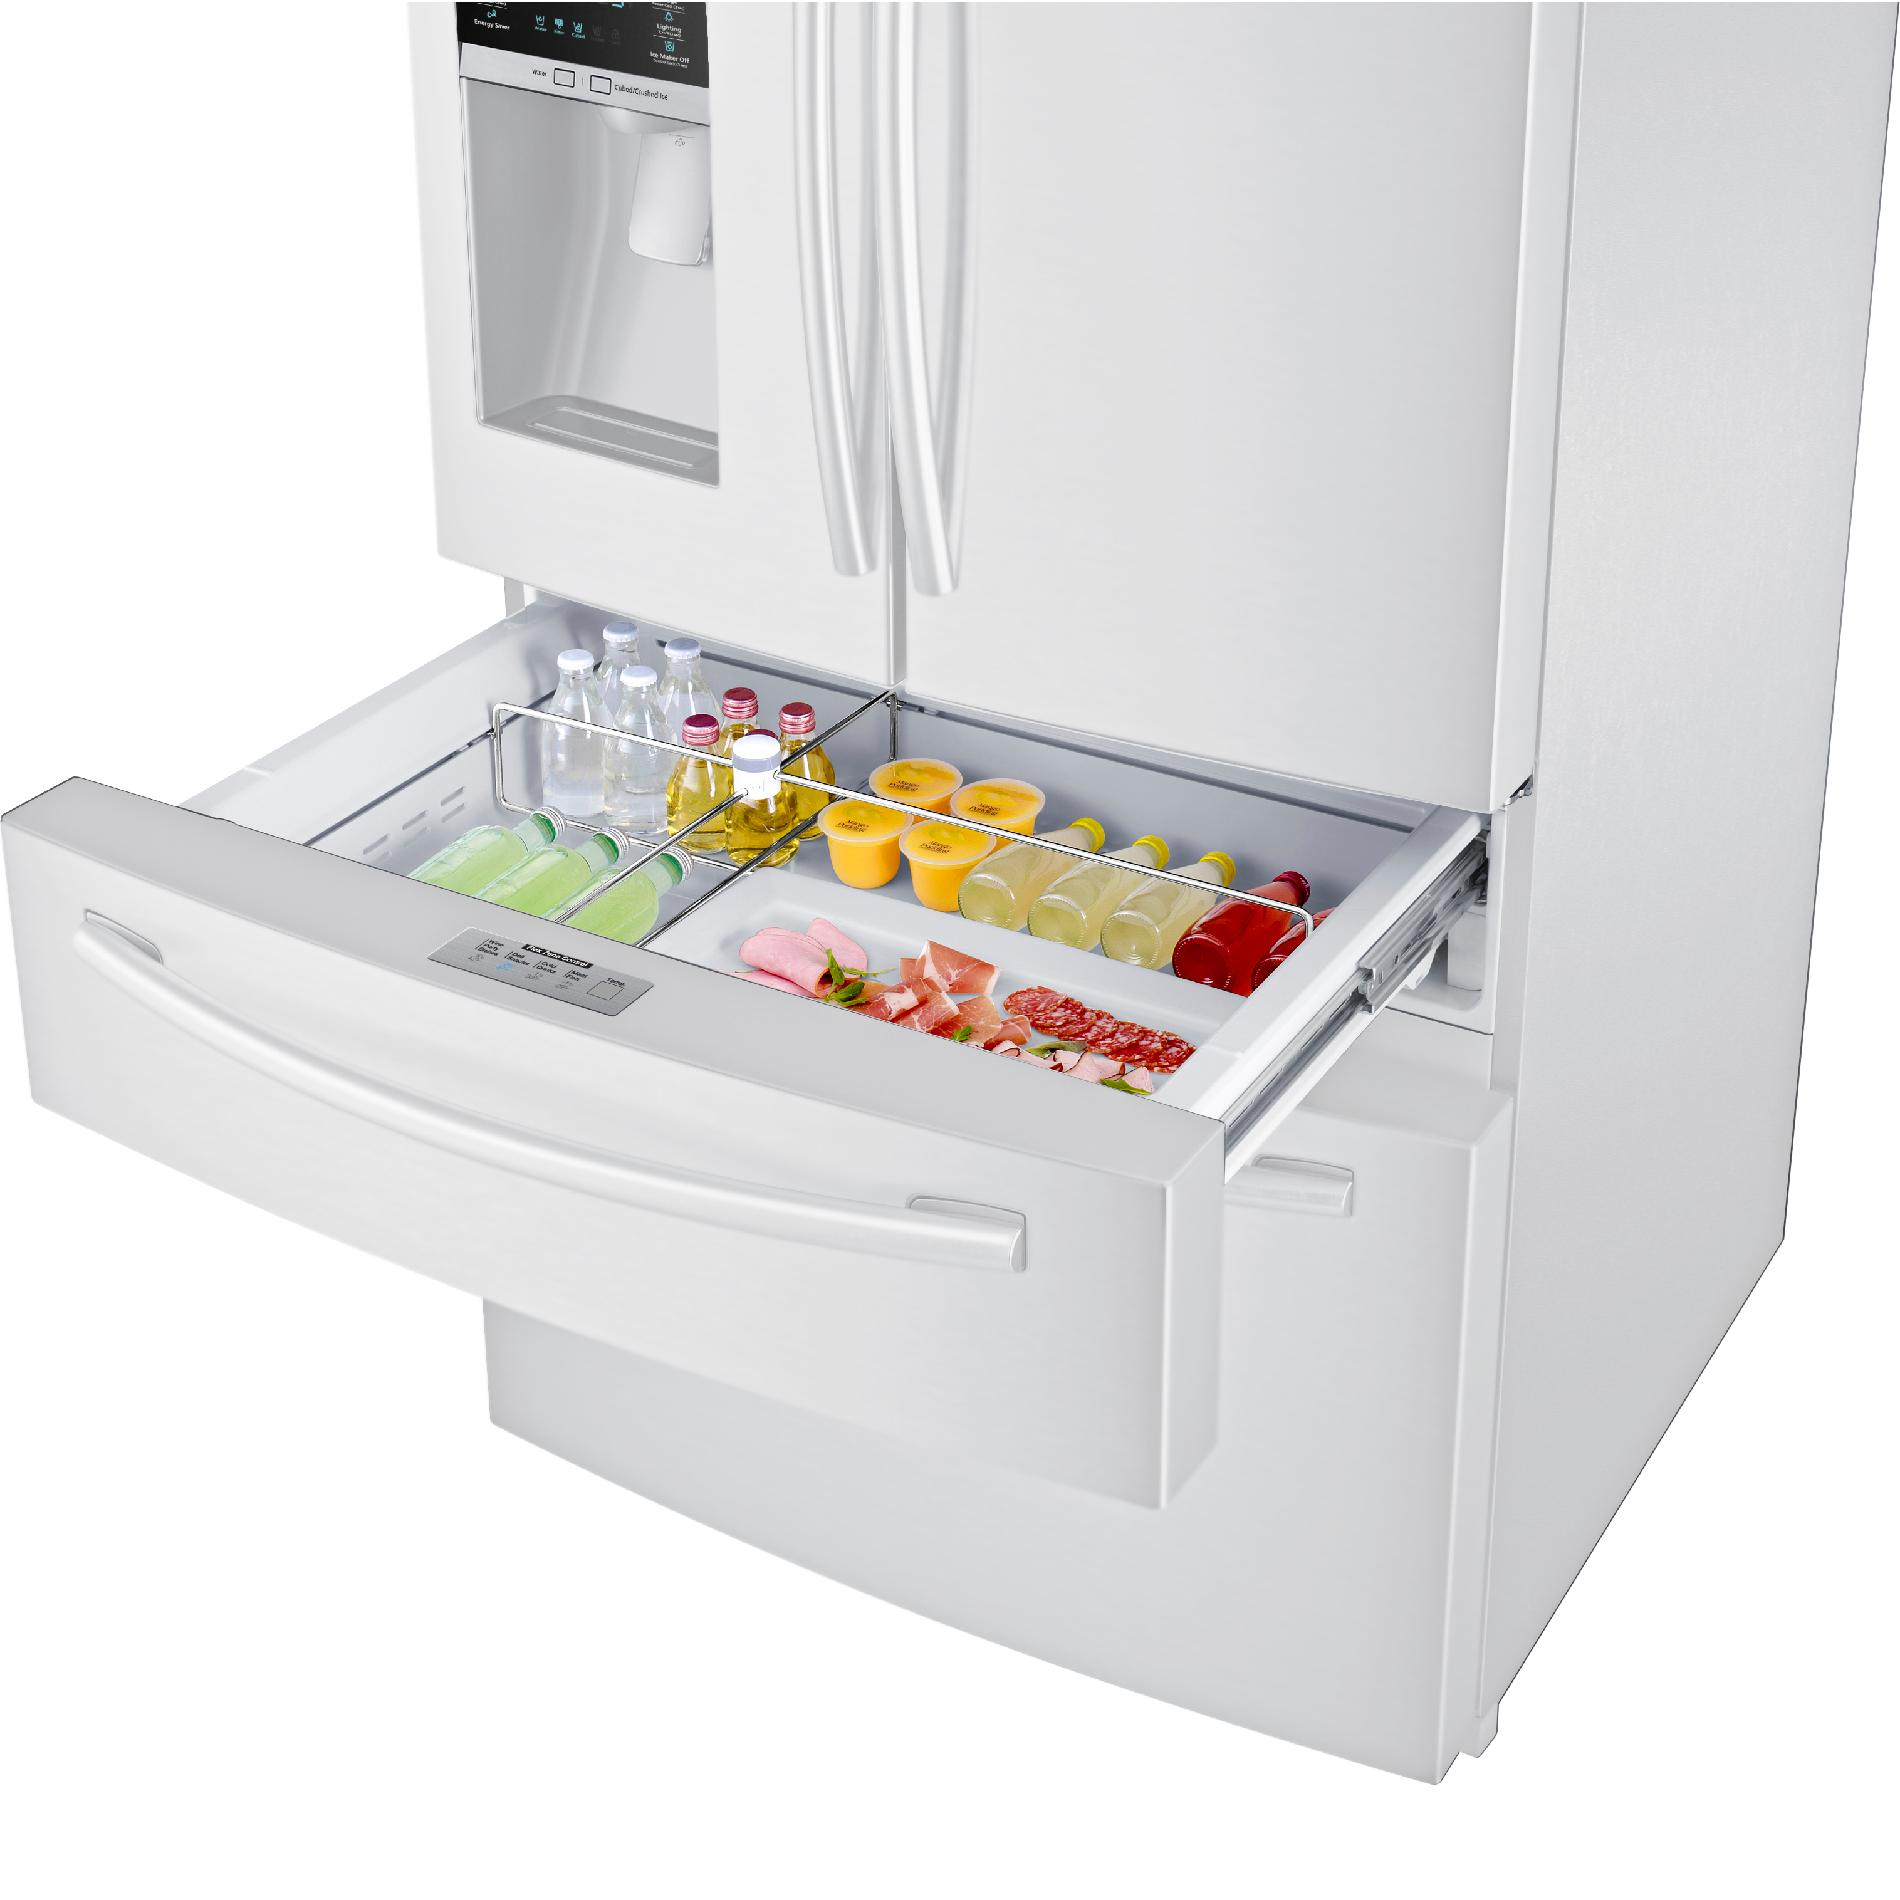 Samsung 28 cu. ft. 4-Door French Door Refrigerator - White